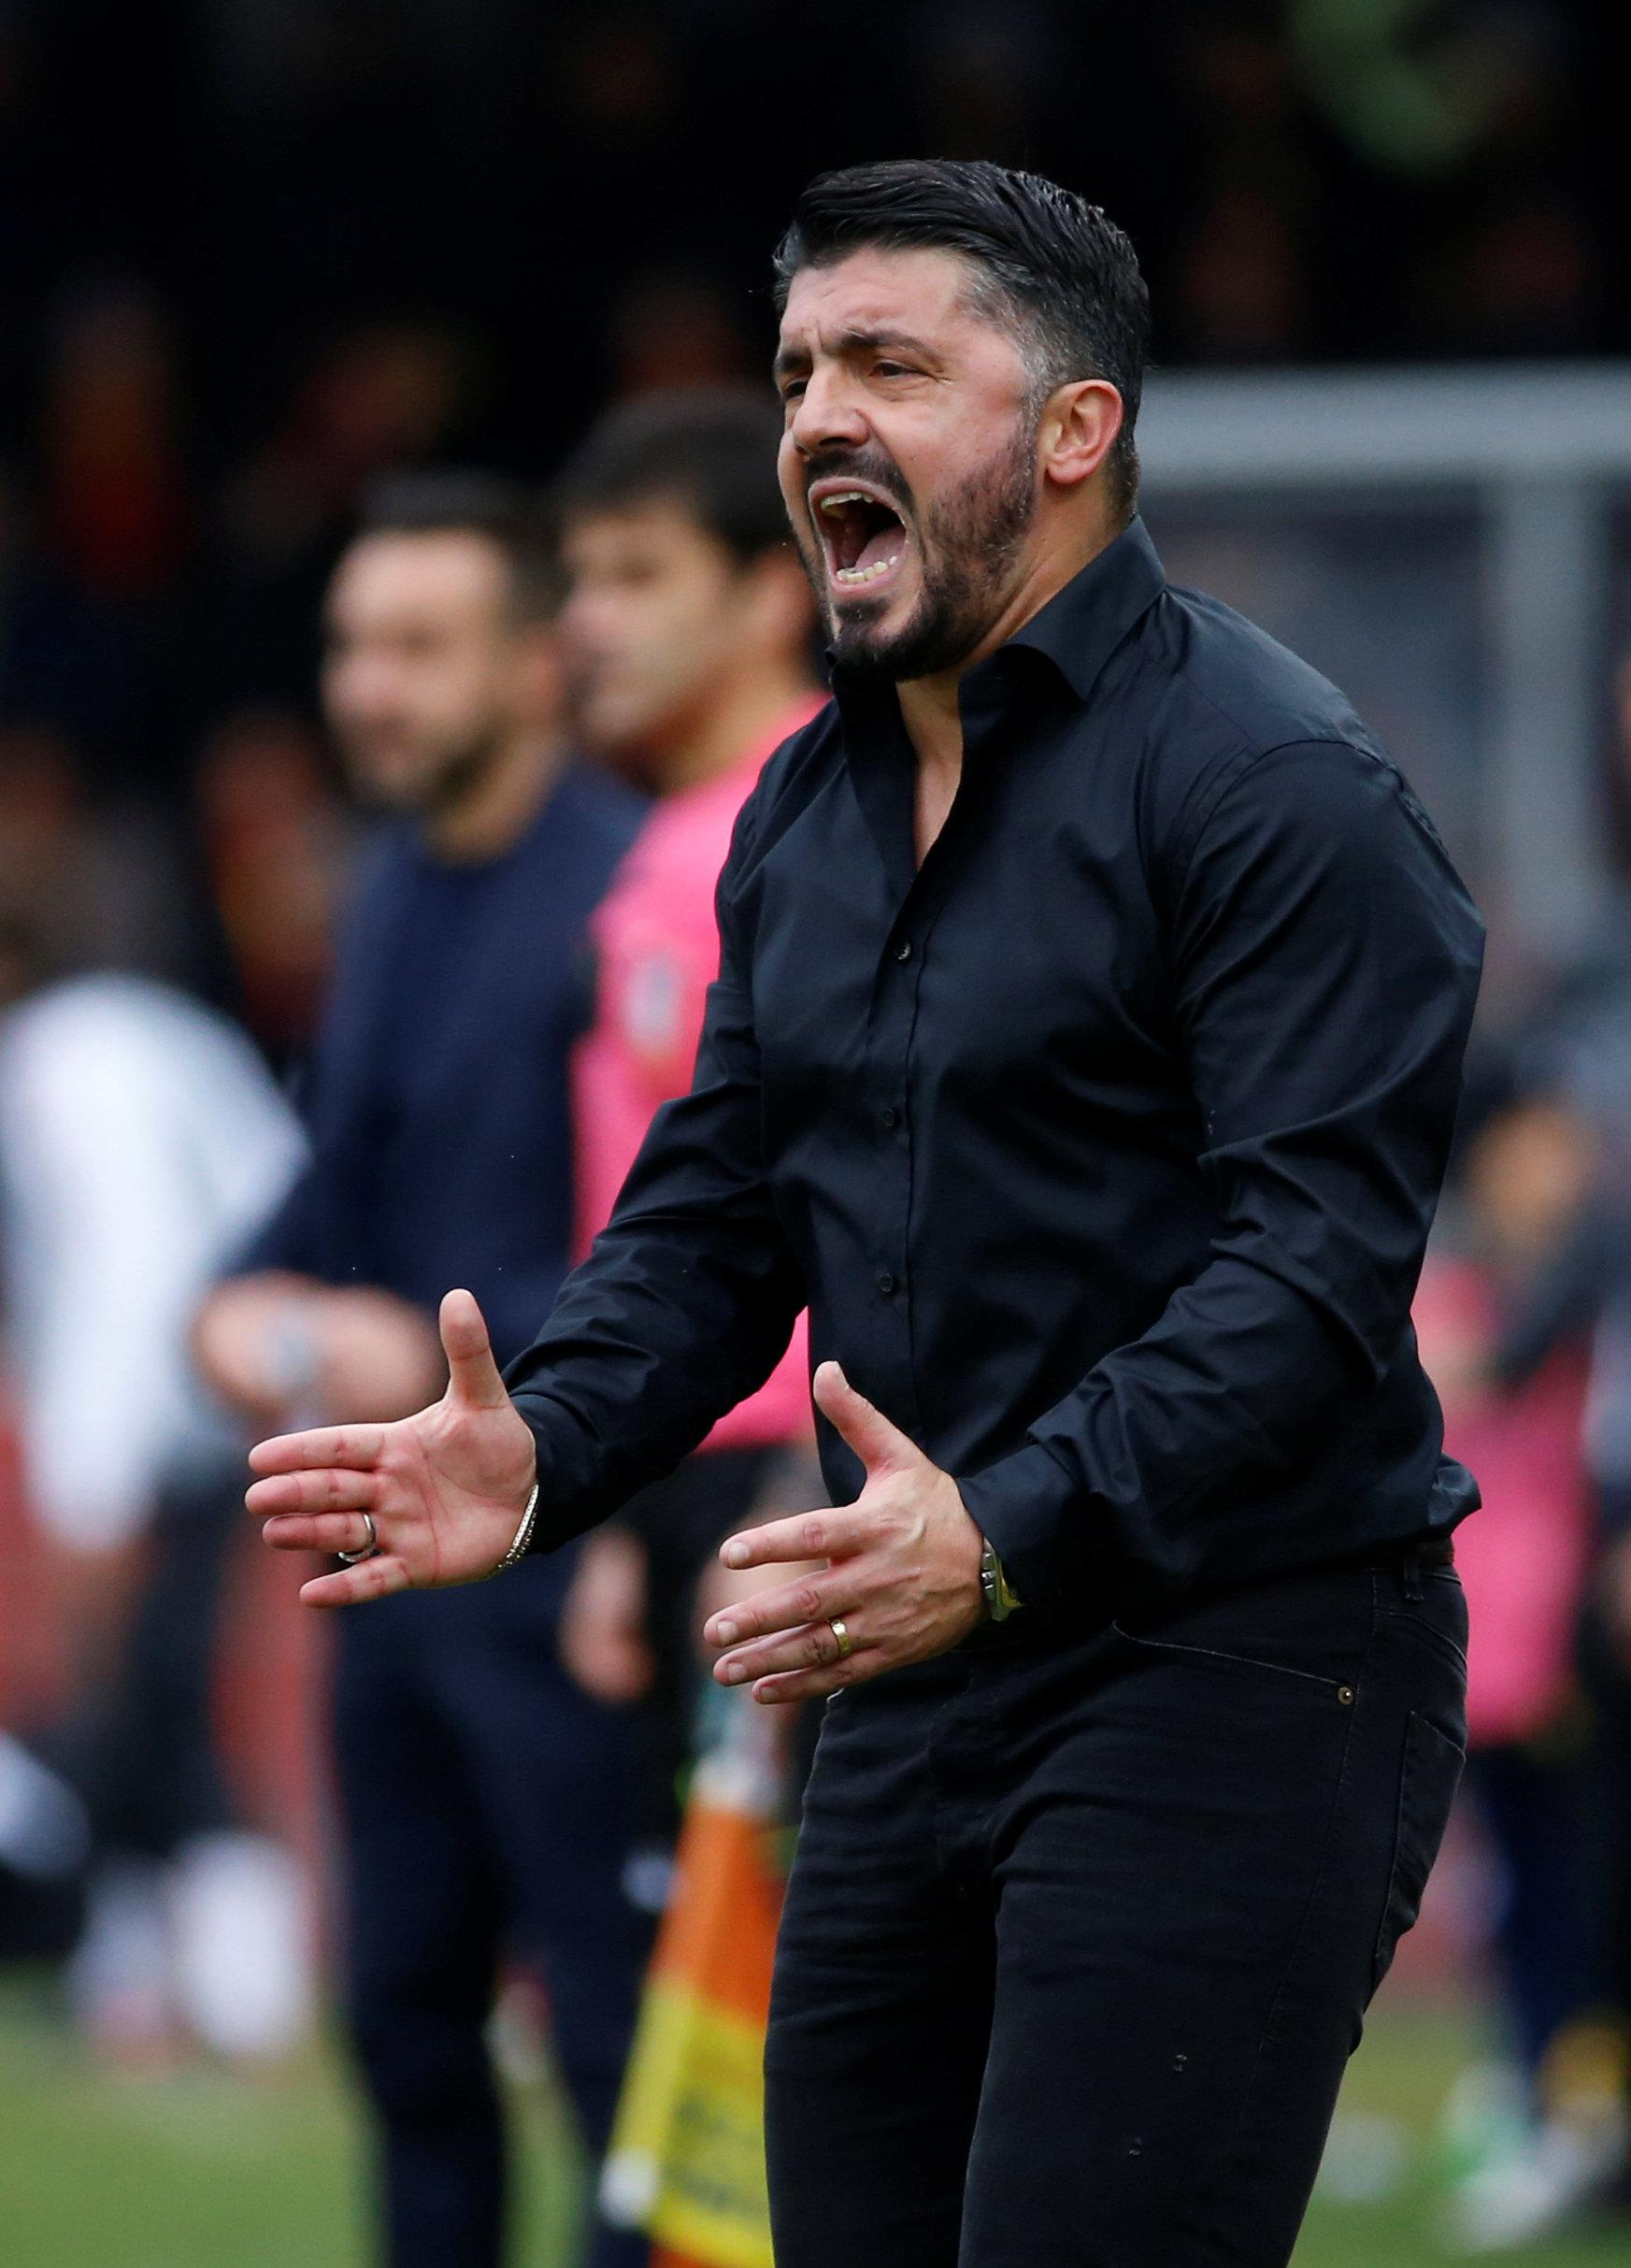 Gattuso has a job on his hands